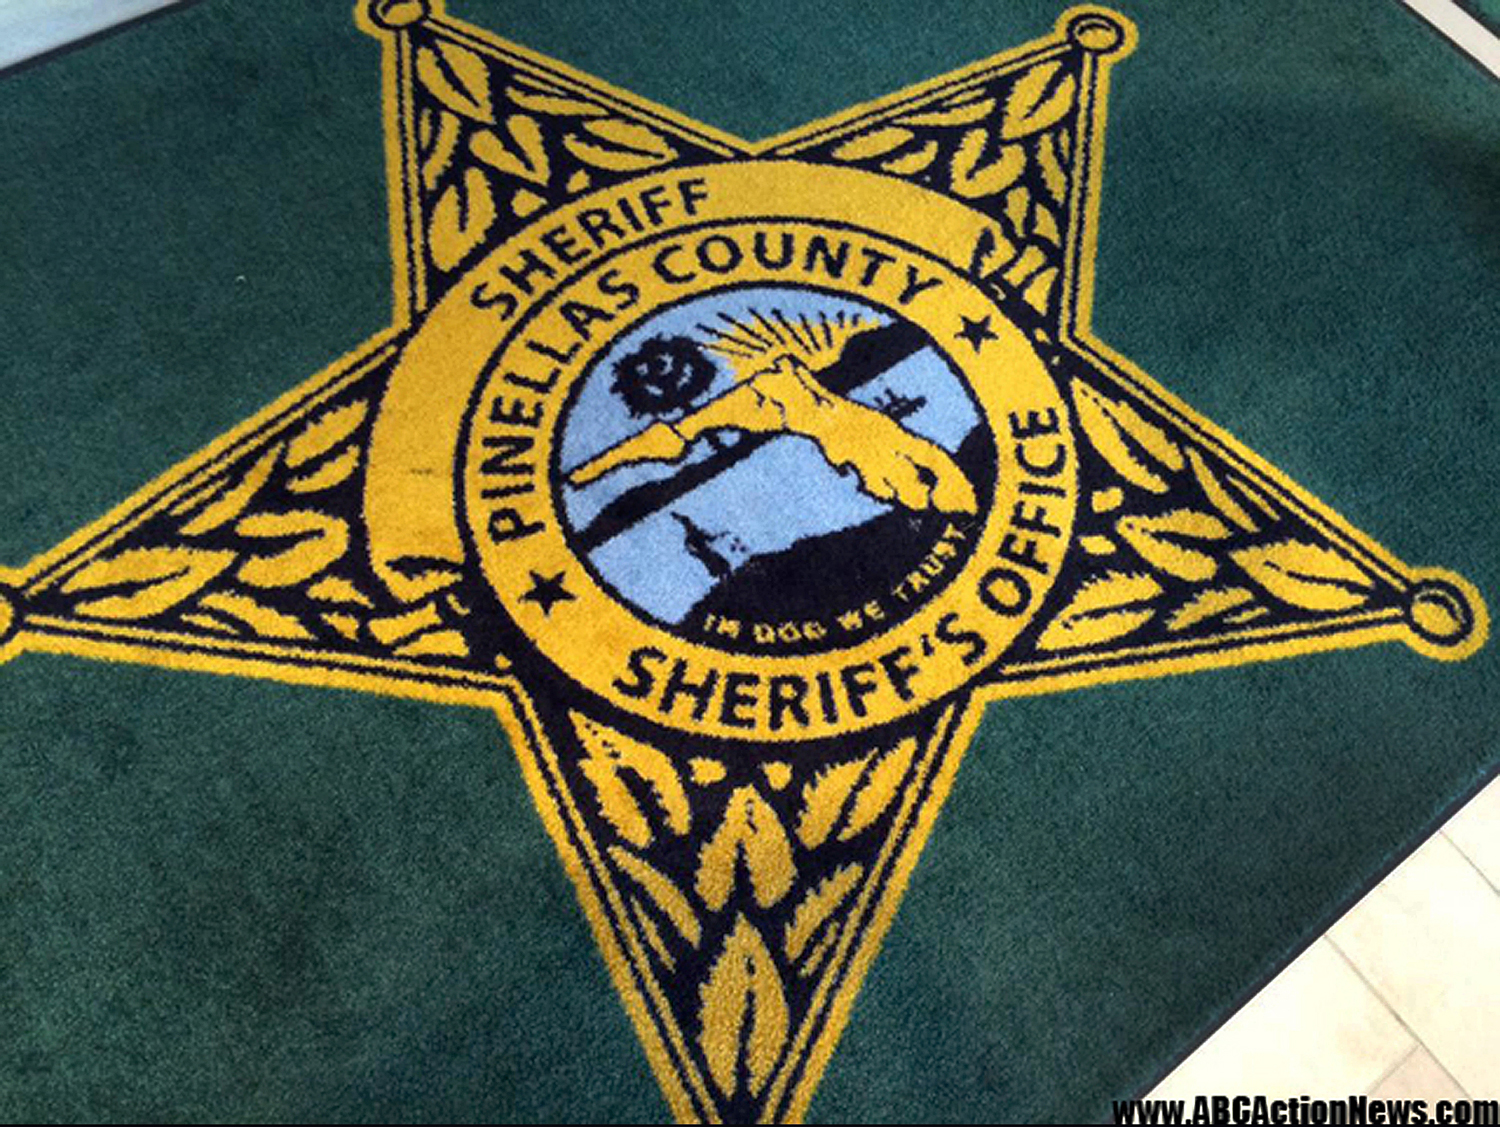 This image released by ABC Action News, shows the Pinellas County Sheriff's Office rug in Largo, Fla., Jan. 14, 2015.